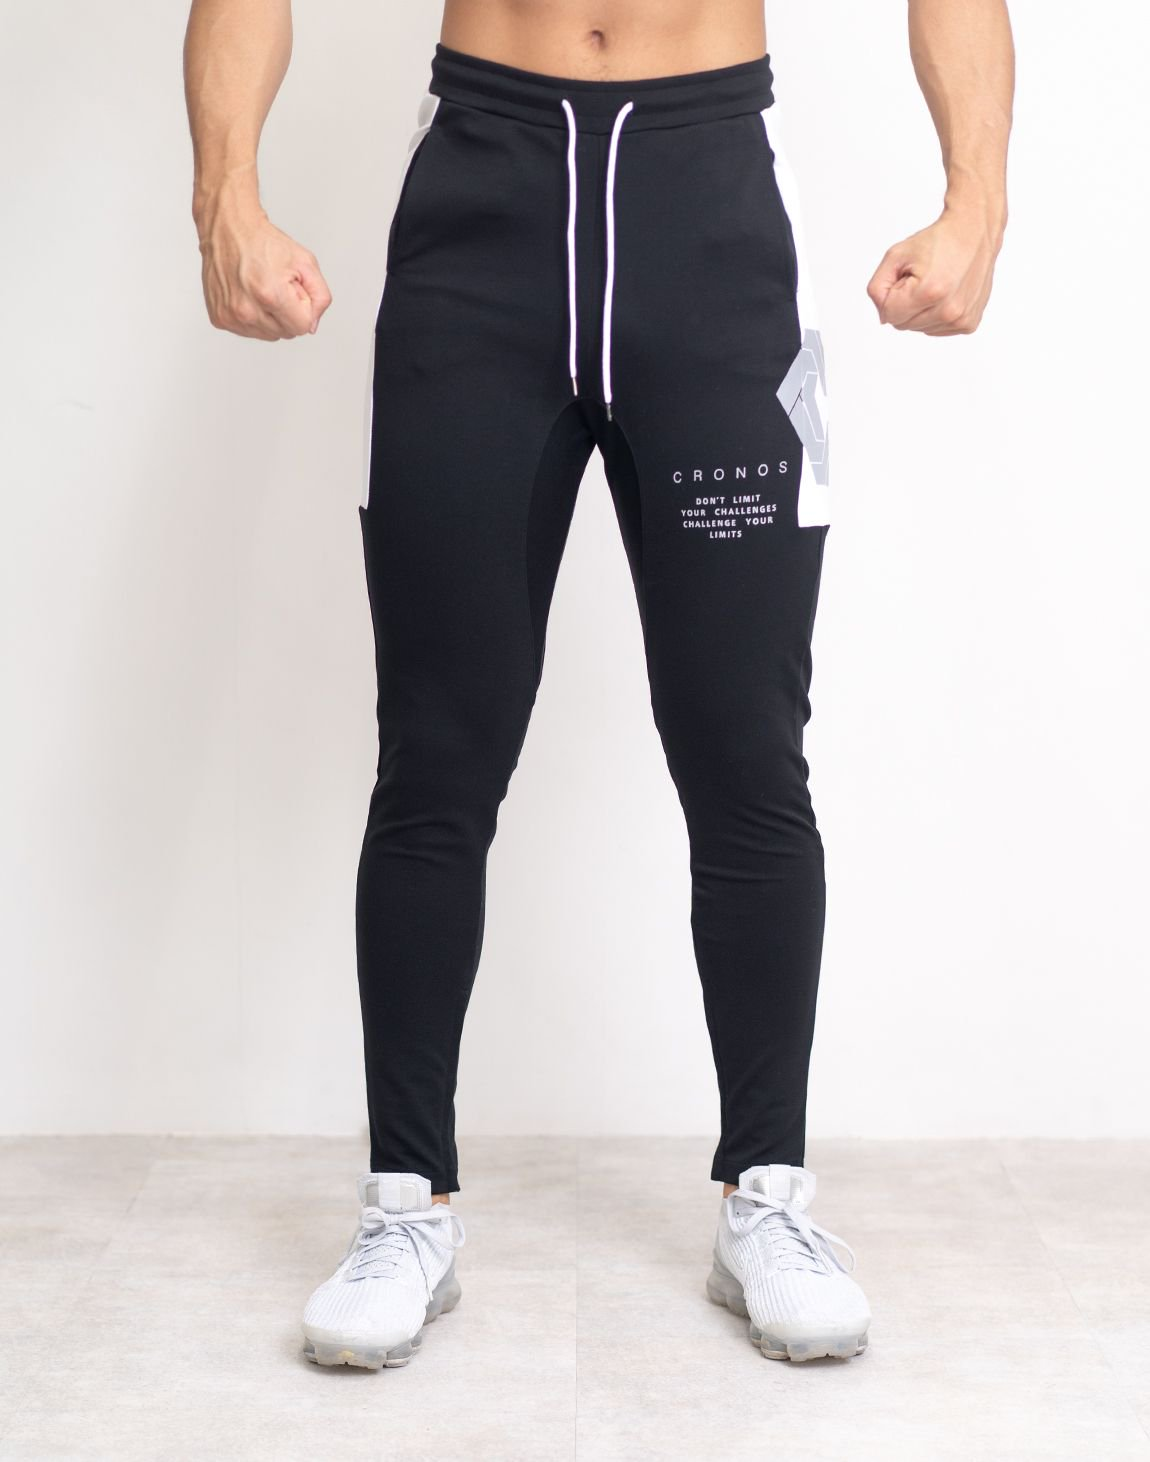 <img class='new_mark_img1' src='https://img.shop-pro.jp/img/new/icons1.gif' style='border:none;display:inline;margin:0px;padding:0px;width:auto;' />CRONOS SIDE BIG LOGO PANTS【BLACK】